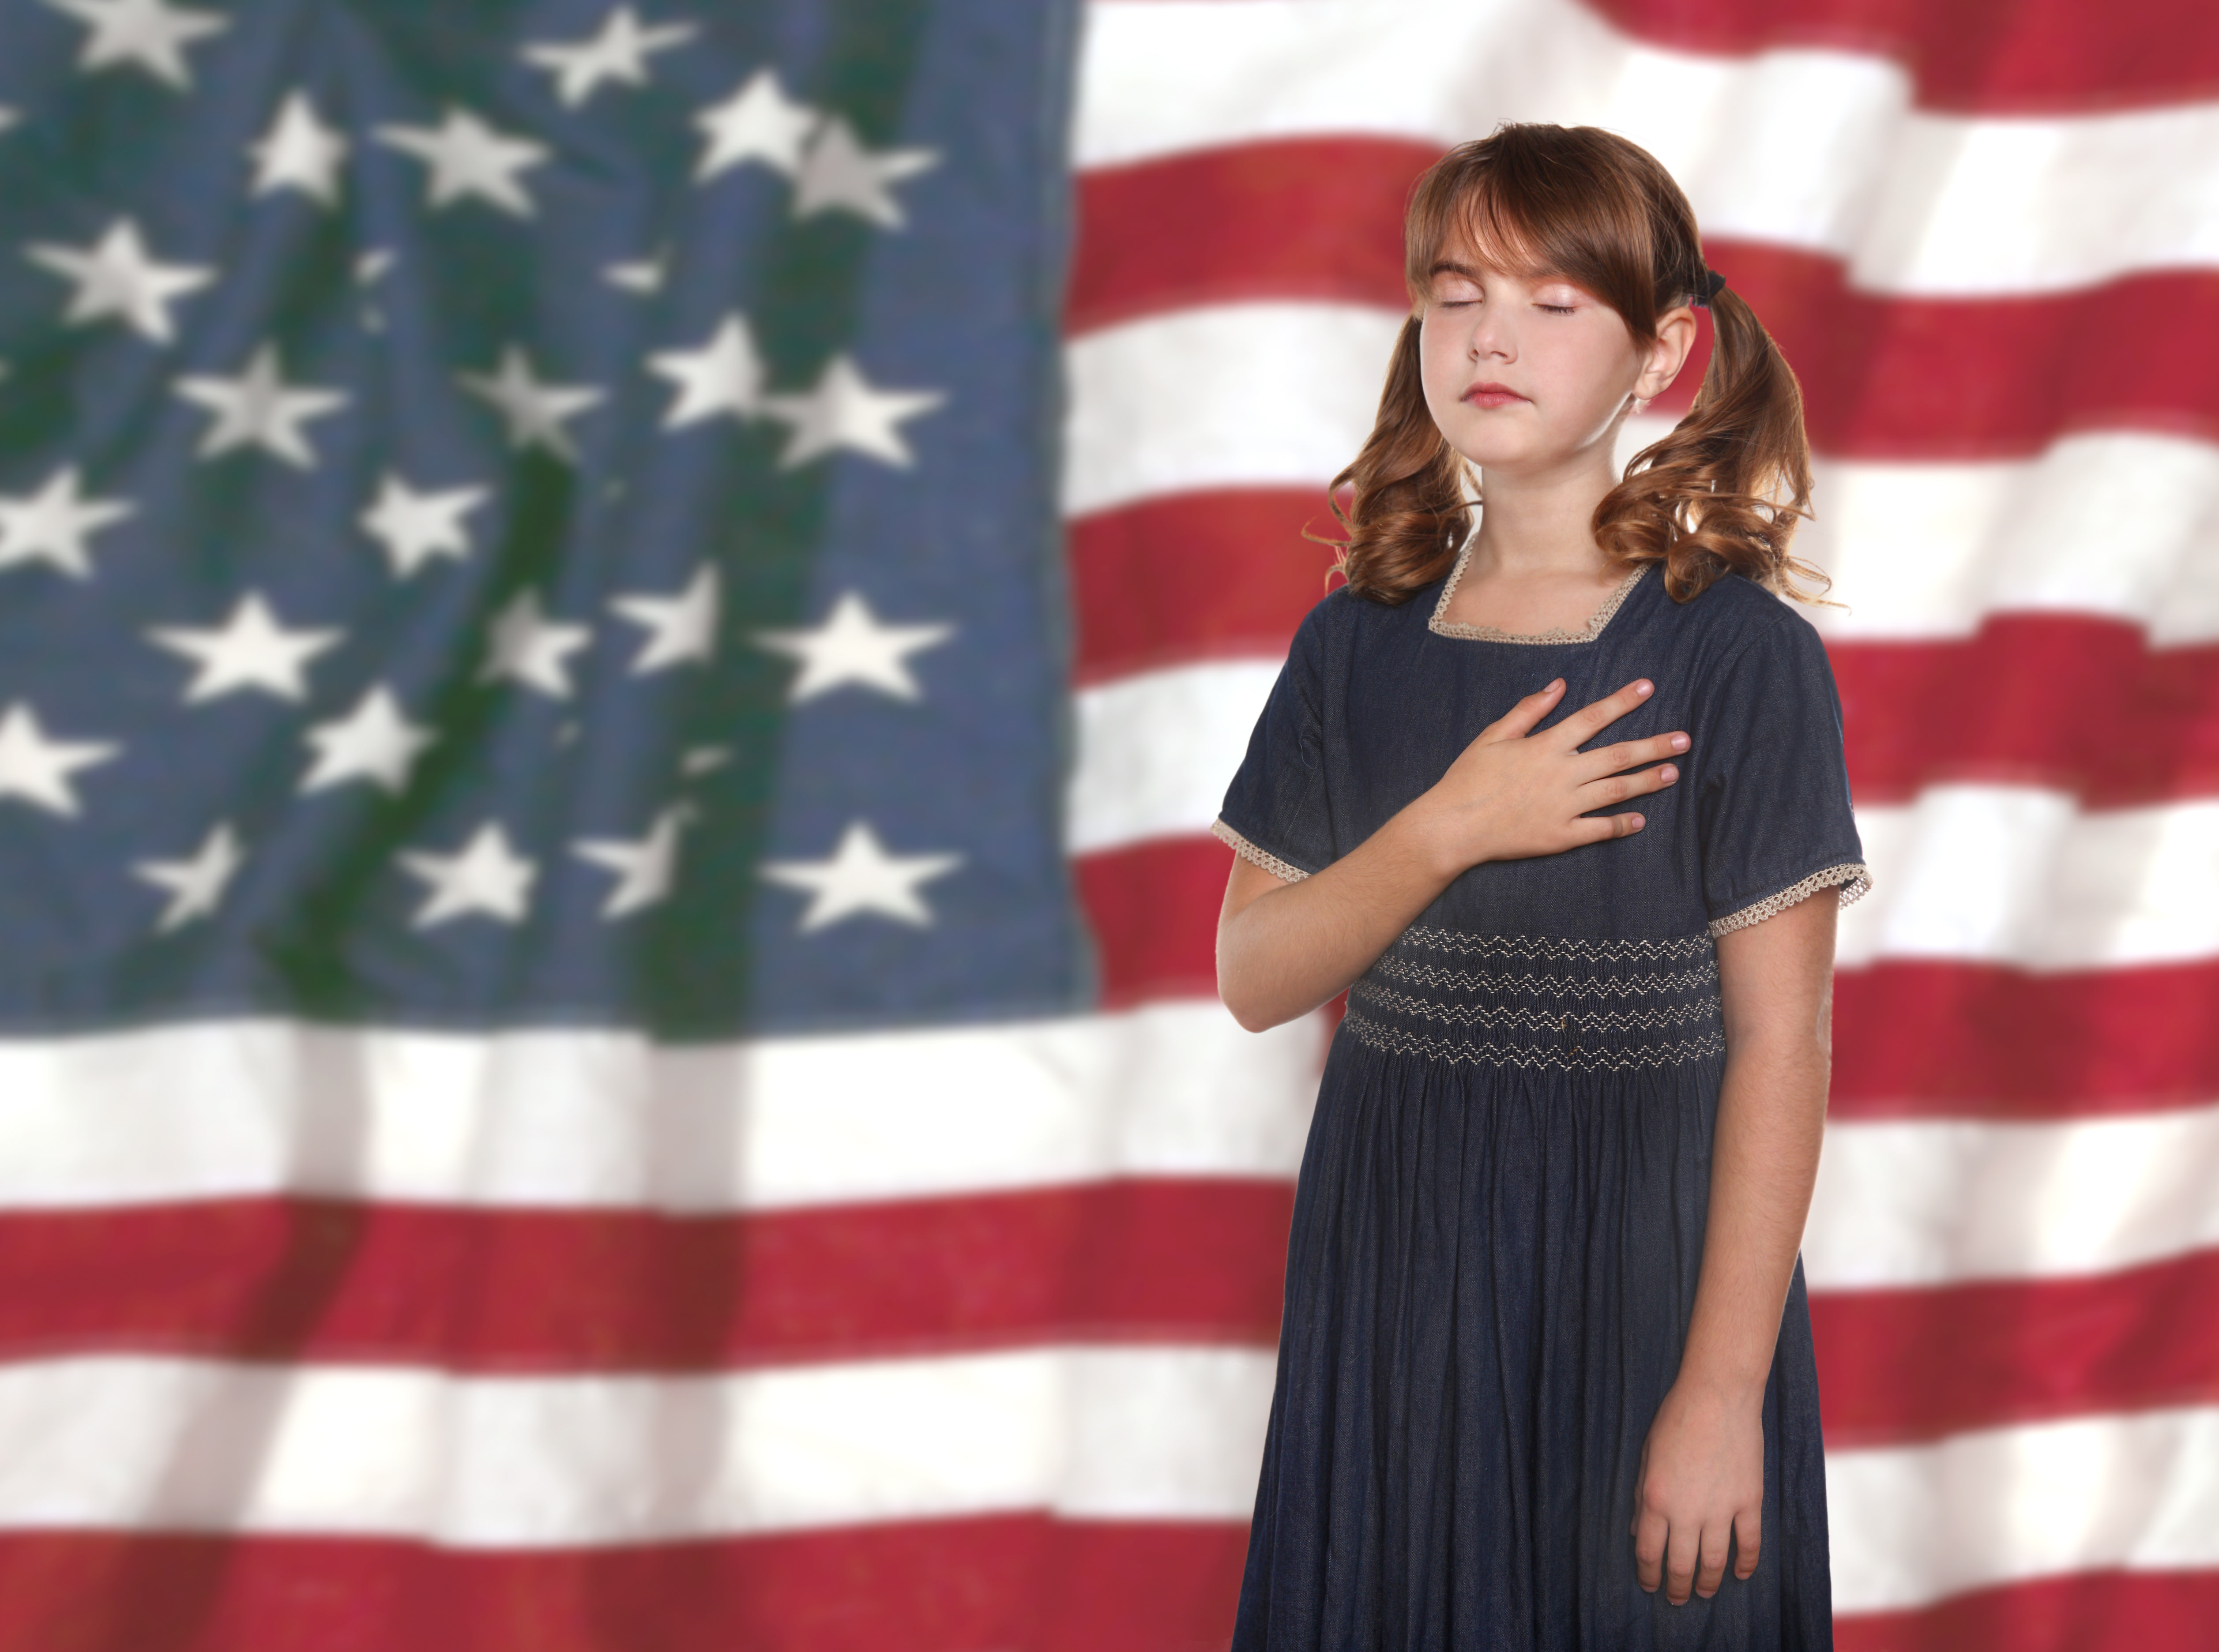 pledge of allegiance meaning